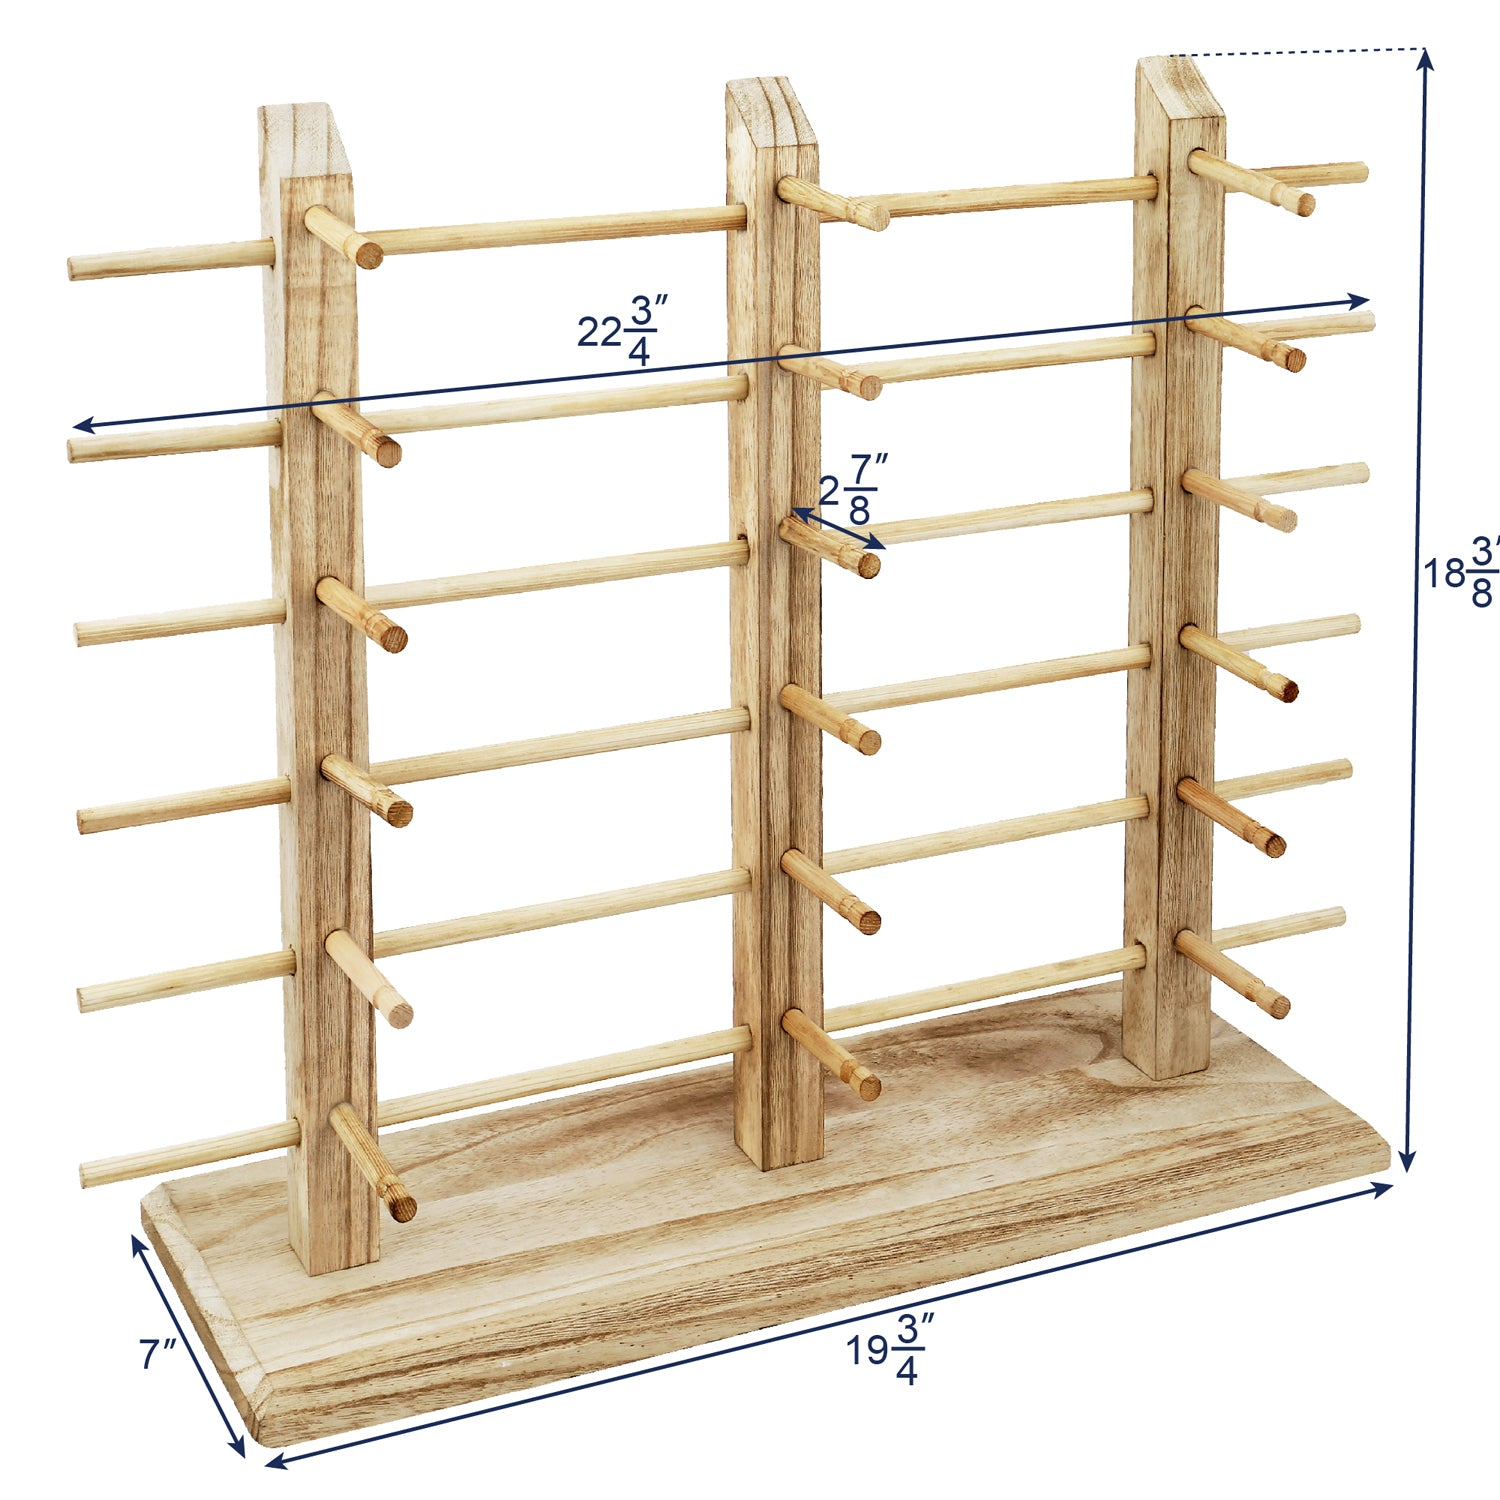 #WD-18OK Wooden Eyeglass Rack for Showcasing 18 Pairs of Glasses